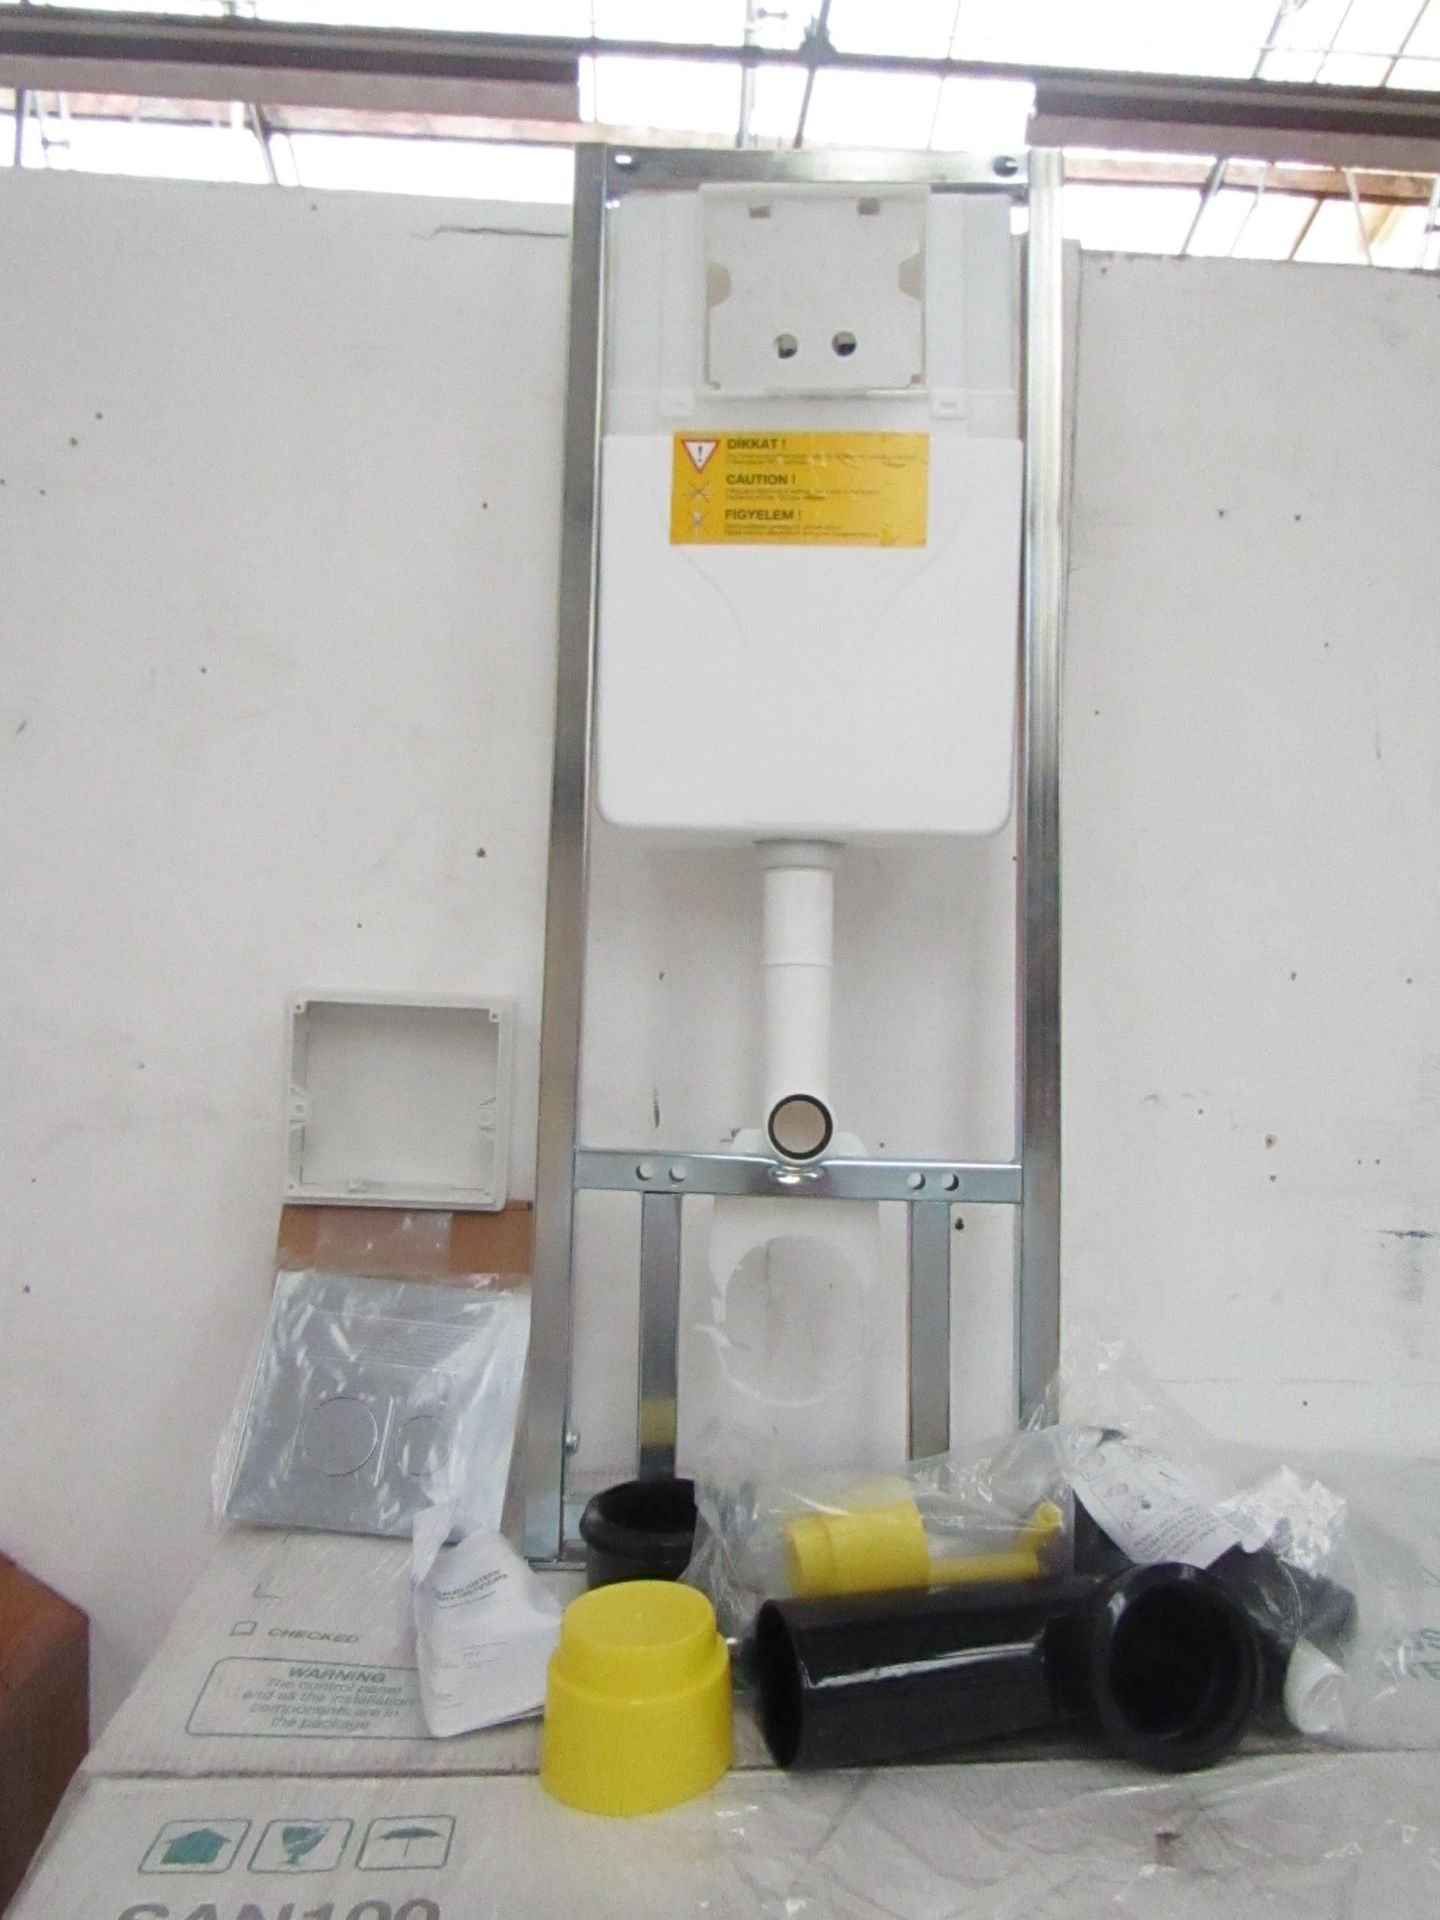 Lot 19 - SAN100 Wall or Floor mounted toilet frame with concealed cistern and dual flush plate included,